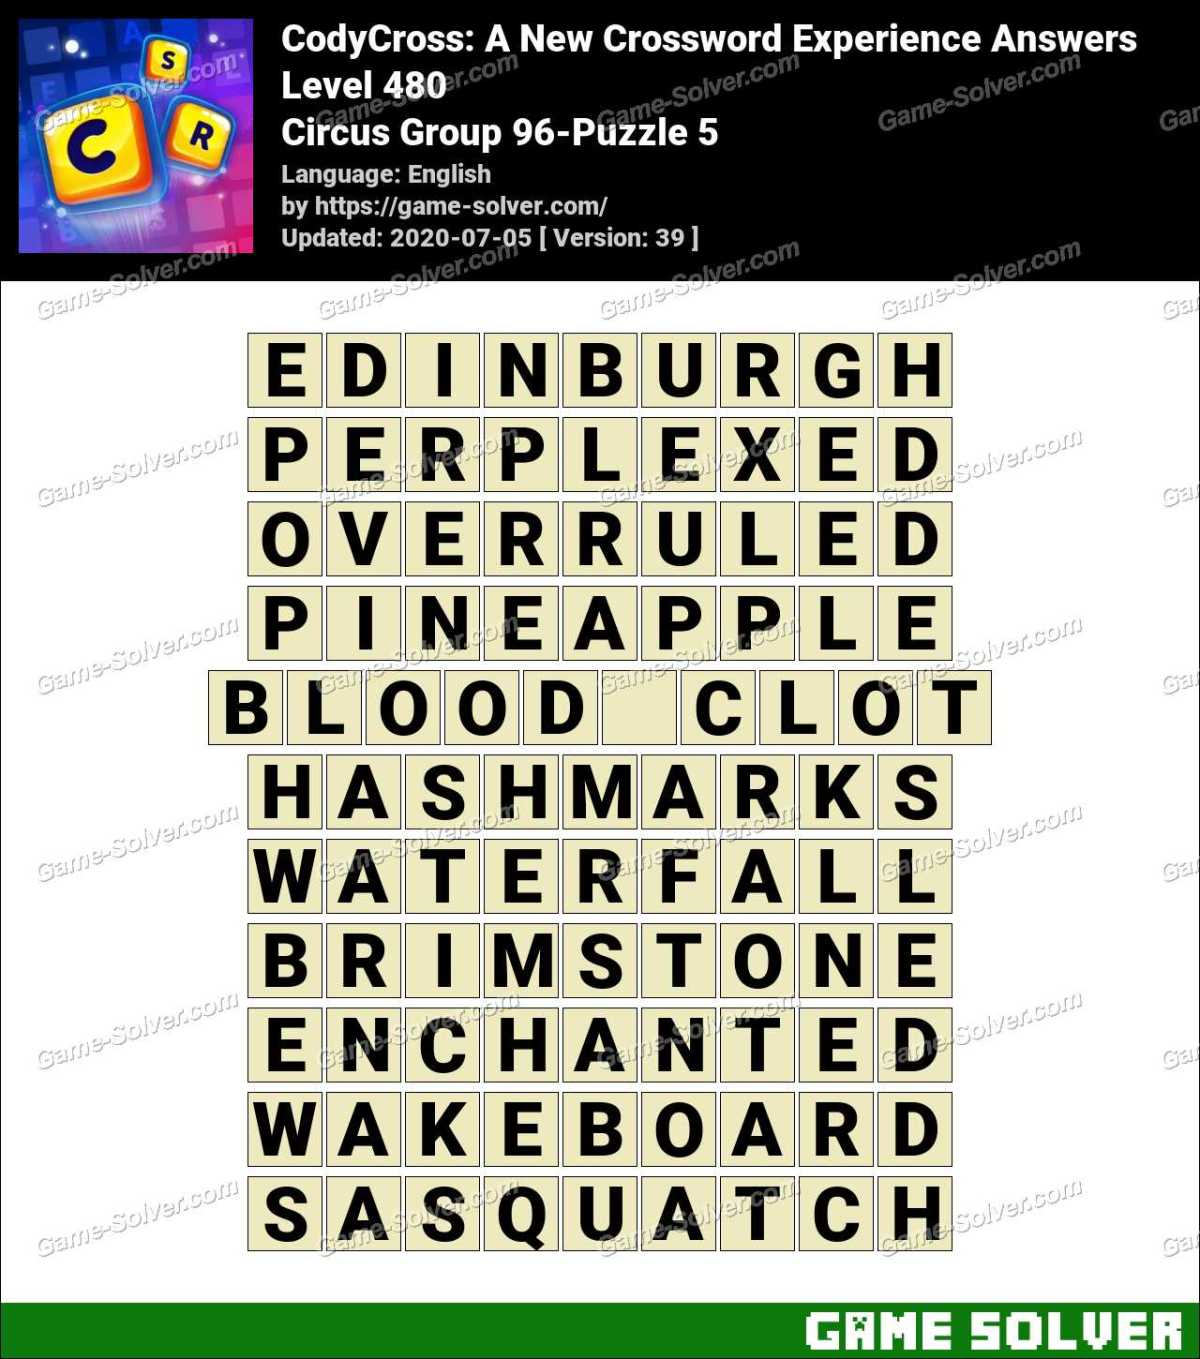 CodyCross Circus Group 96-Puzzle 5 Answers